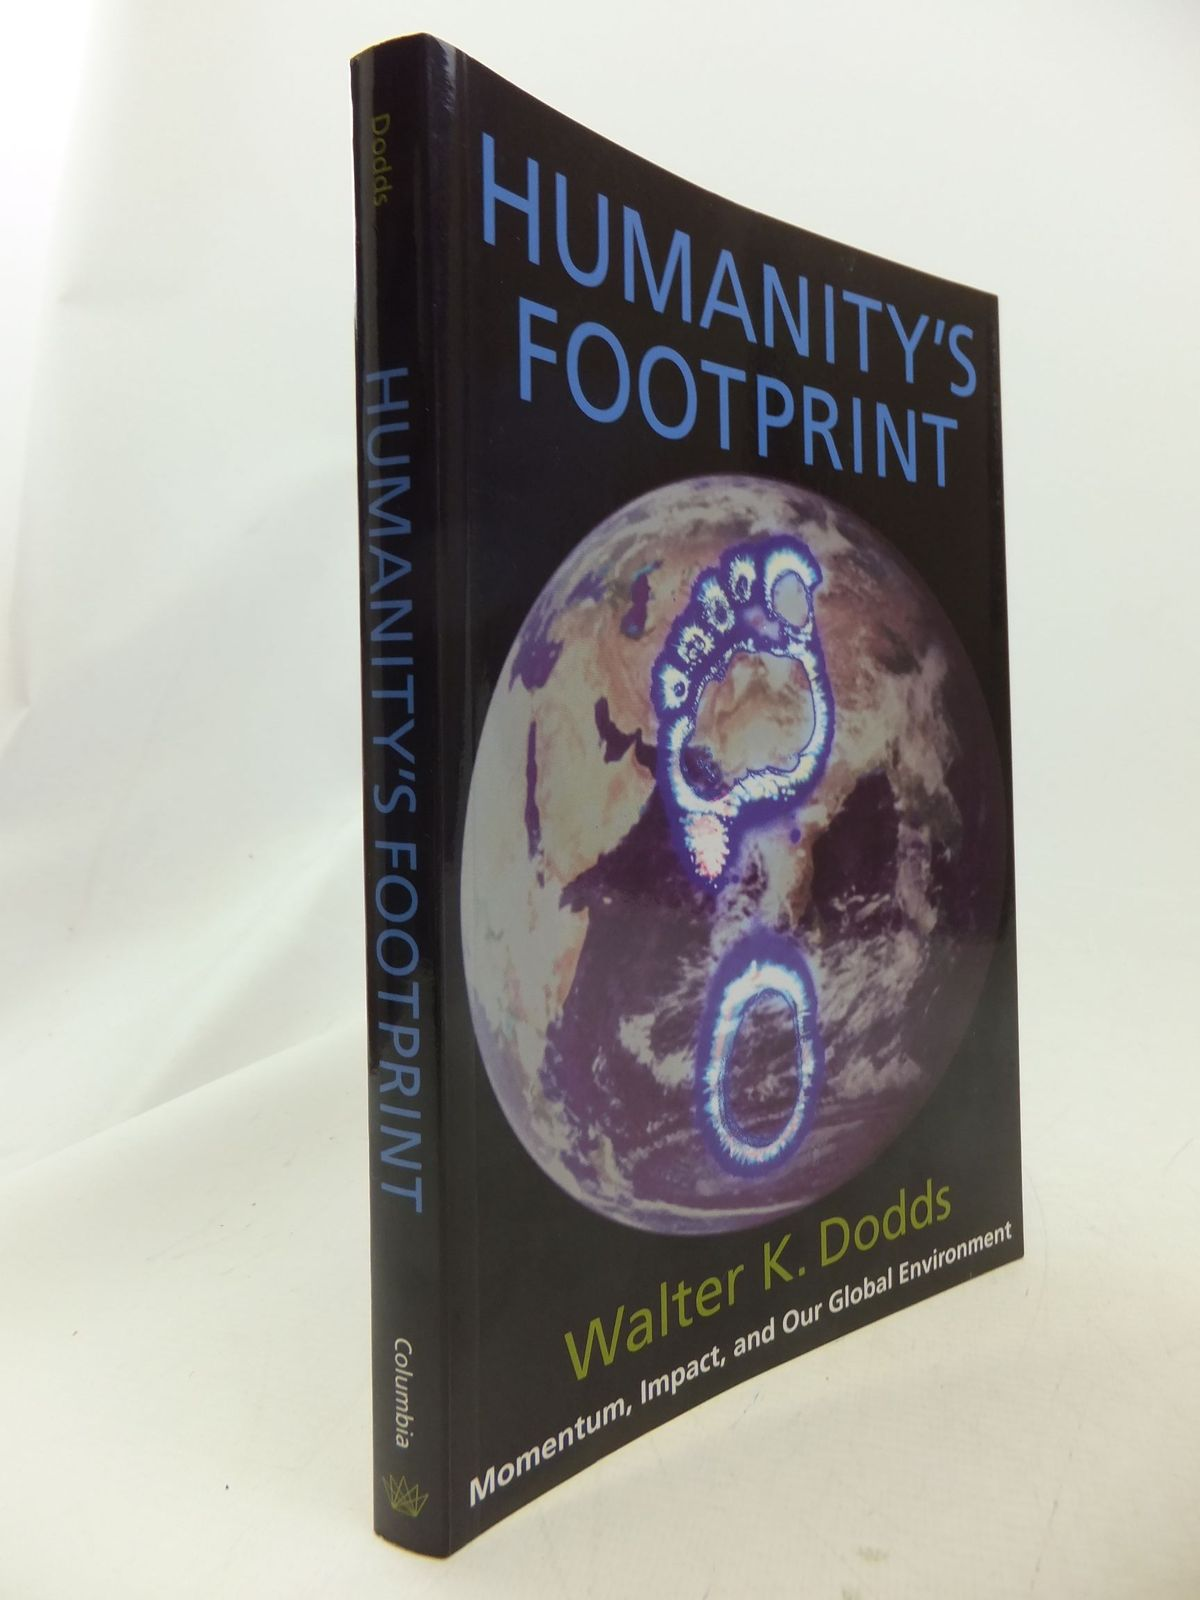 Photo of HUMANITY'S FOOTPRINT MOMENTUM, IMPACT, AND OUR GLOBAL ENVIROMENT written by Dodds, Walter K. published by Columbia University Press (STOCK CODE: 1710819)  for sale by Stella & Rose's Books